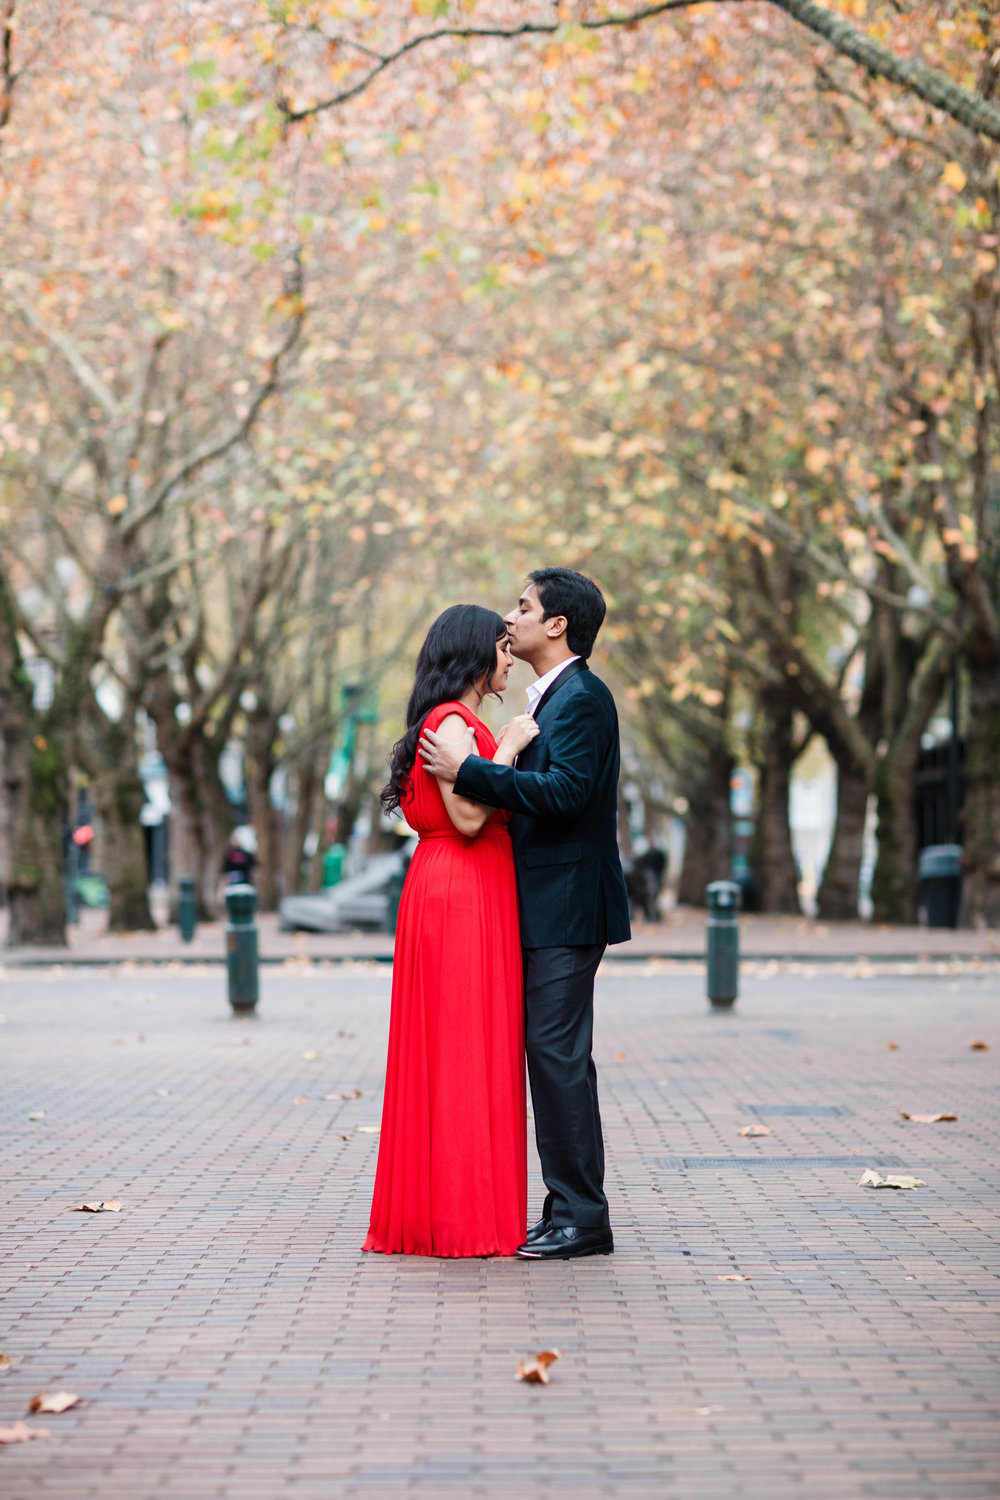 Sushat+Nancy_Engagement_Pioneer+Square_Sculpture+Park_Seattle_Oct2016_APW209.jpg